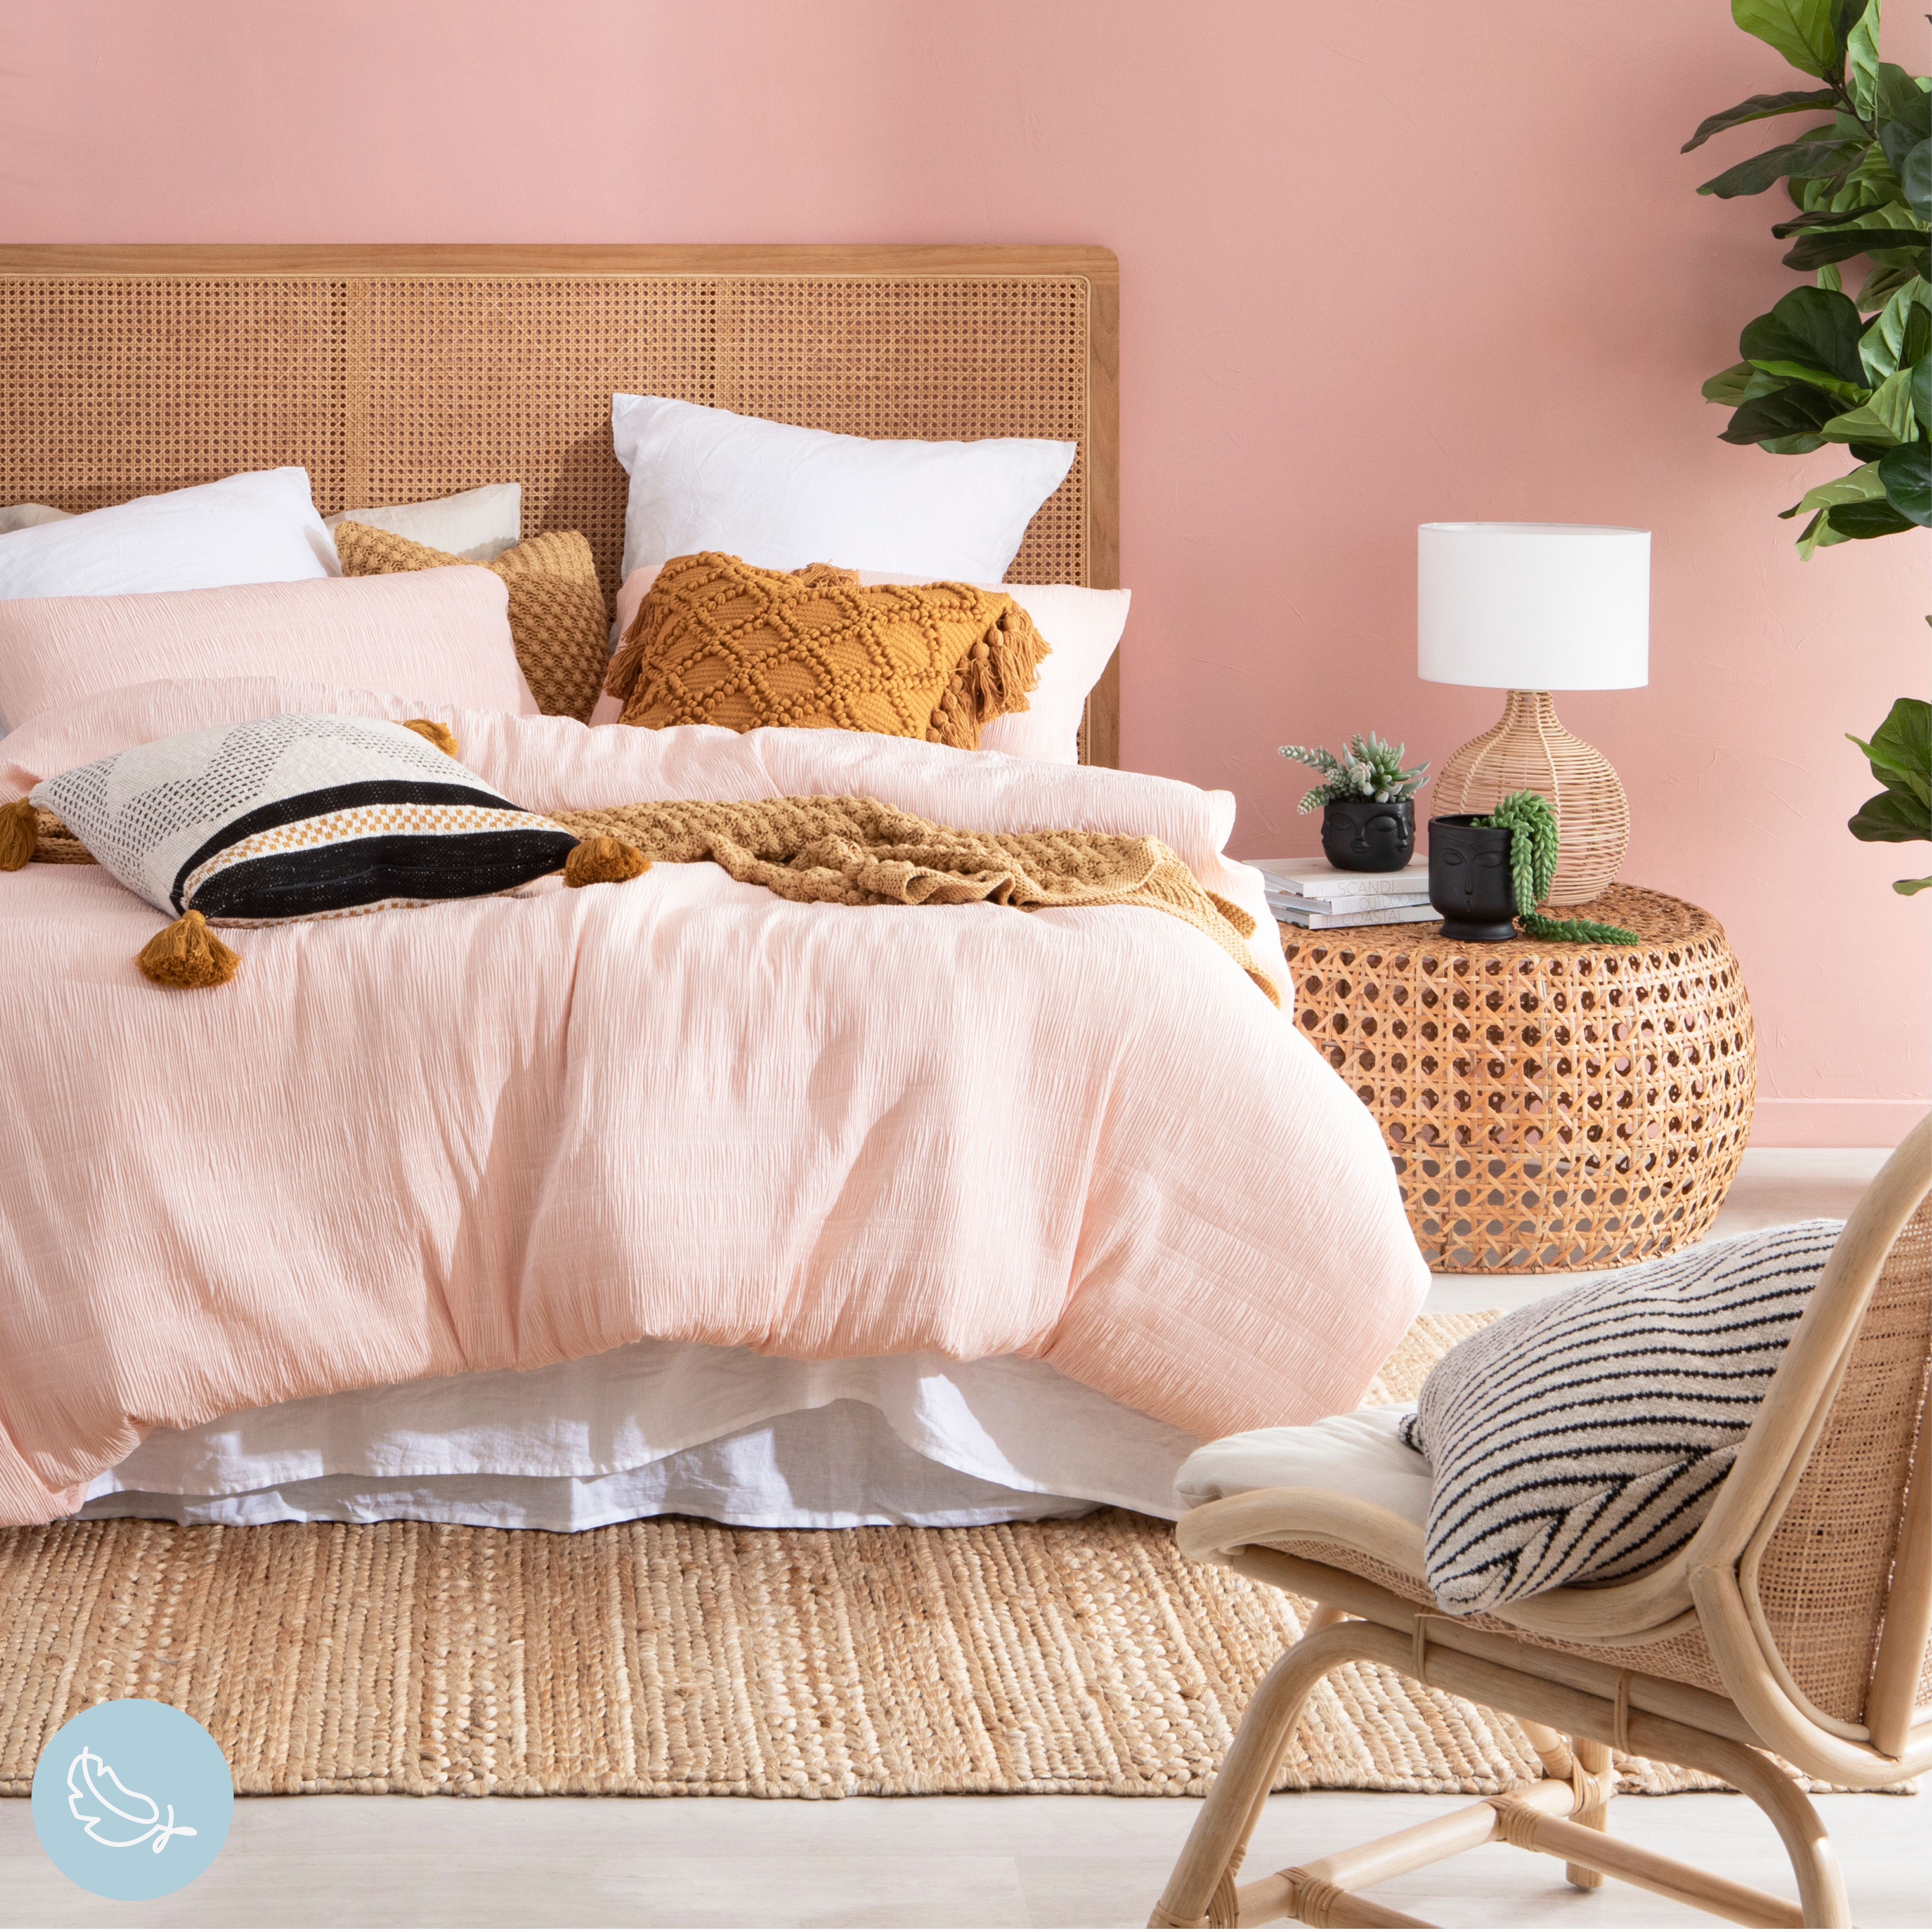 Pair beautiful blush pink and sunny mustard for gorgeous pops of colour and warmth in your bedroom this season #quiltcoverset #quiltcover #bedroomstyle #bedroomstyling #bedroomdecor #diyroomdecor